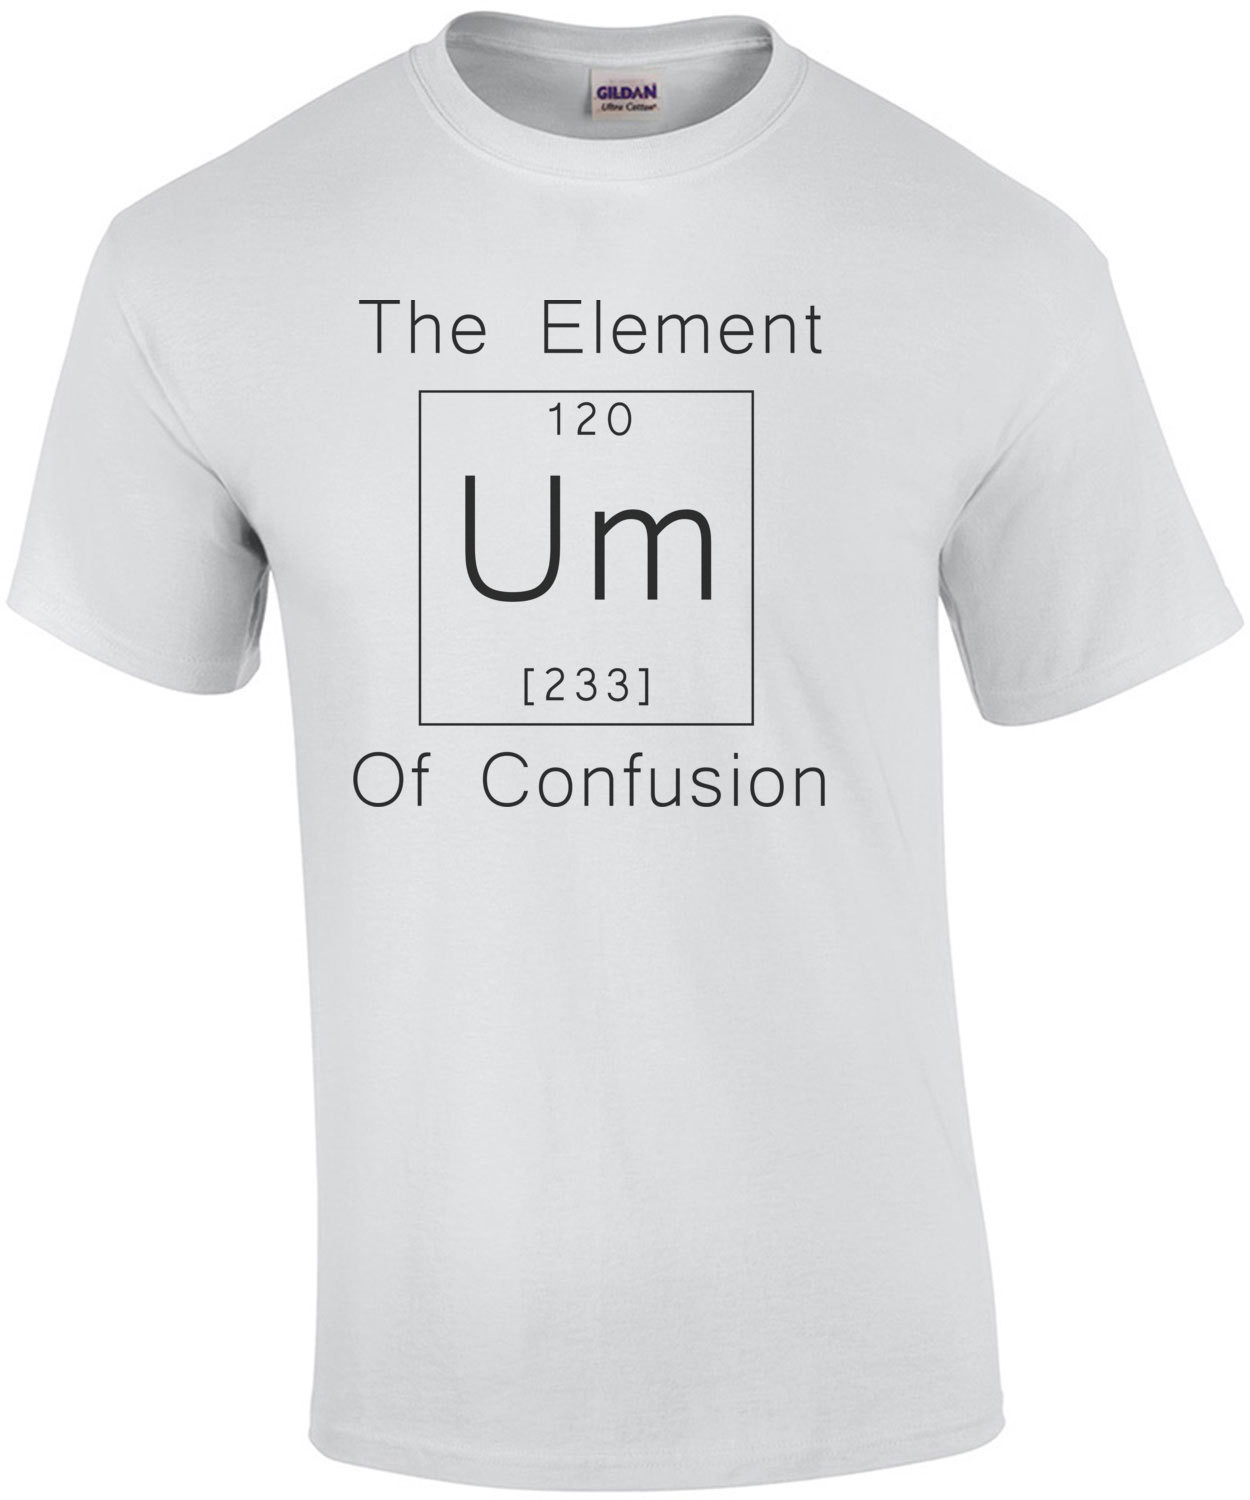 The Element Of Confusion - Element T-Shirt - Funny Chemistry T-Shirt - Funny Periodic Table T-Shirt